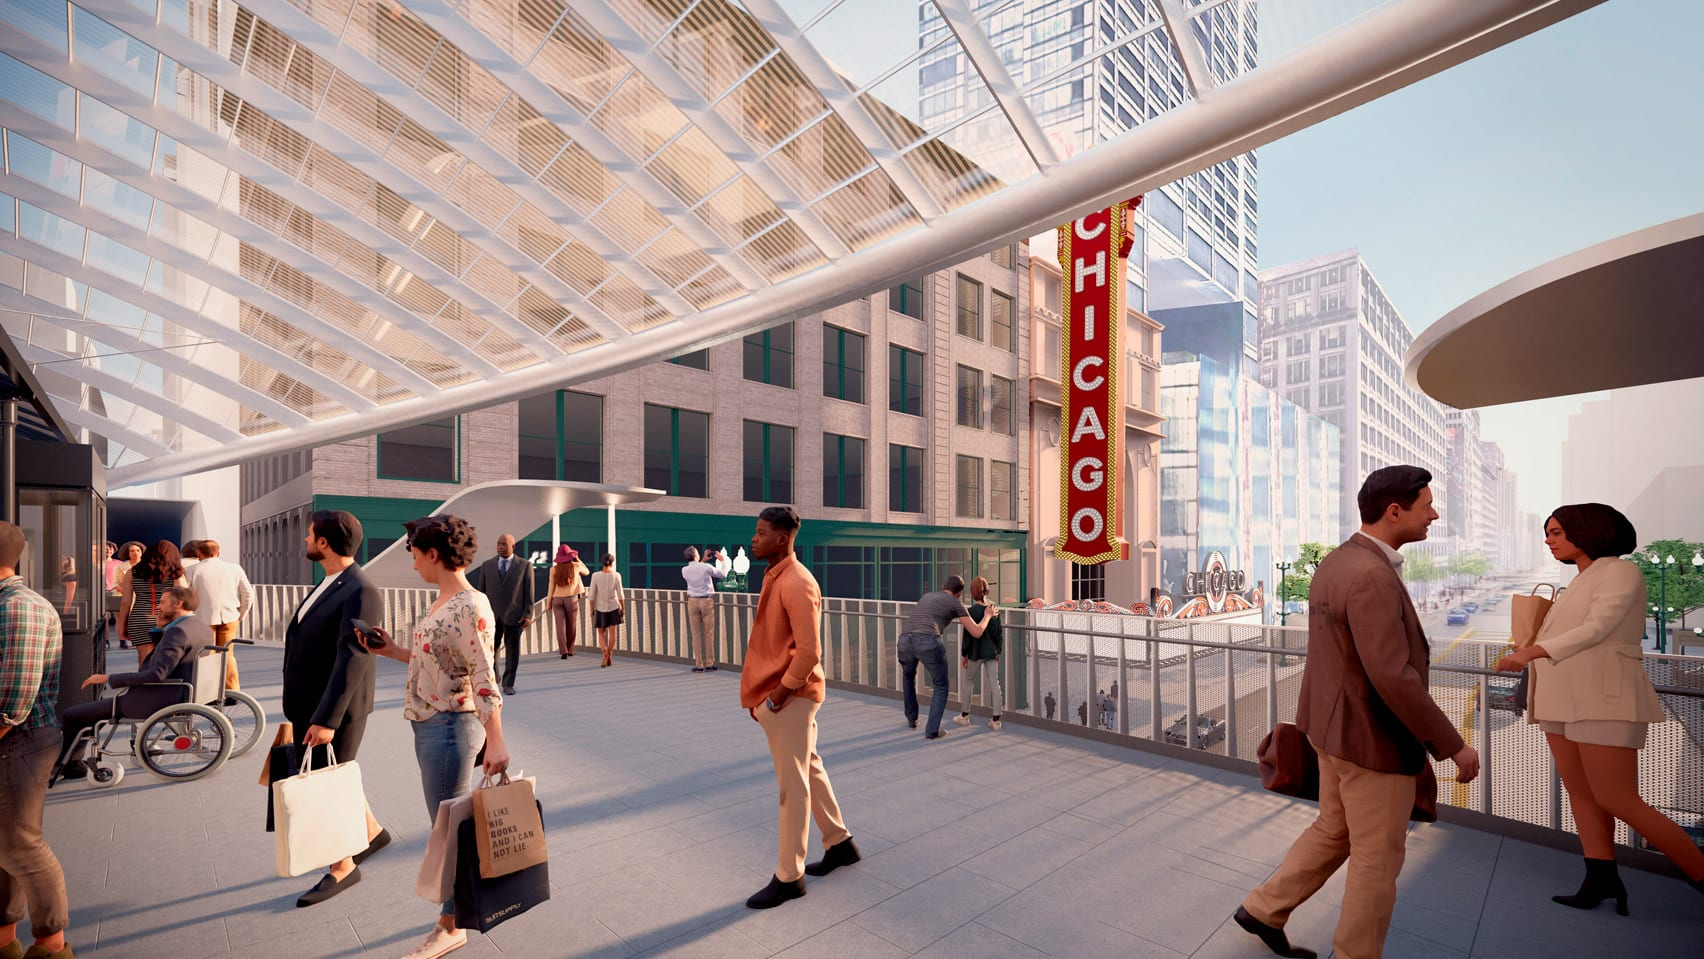 State/Lake Station redesign by SOM